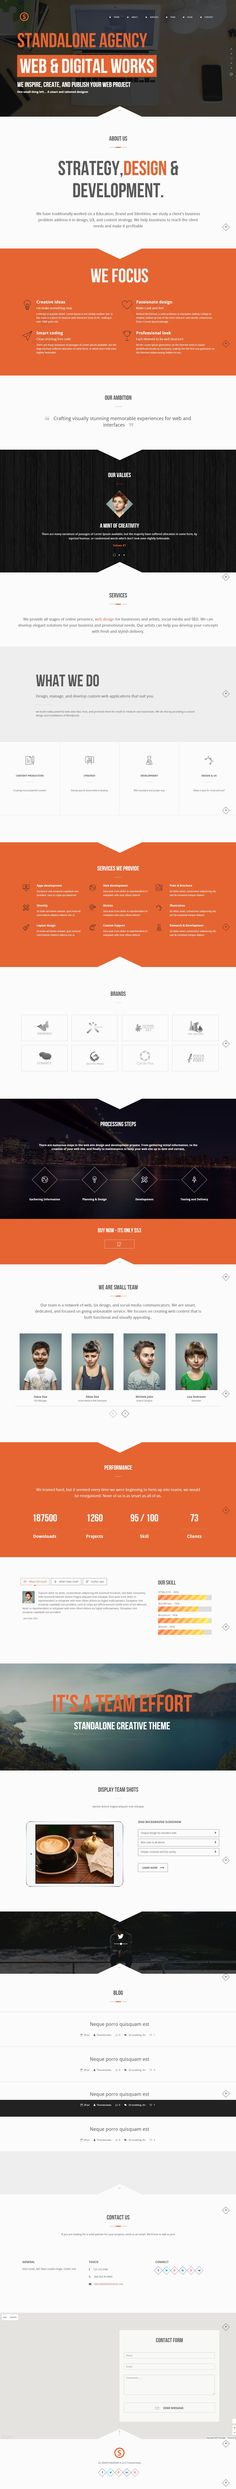 Super Blog - WooCommerce Responsive WordPress Theme Timeline - agent contract template